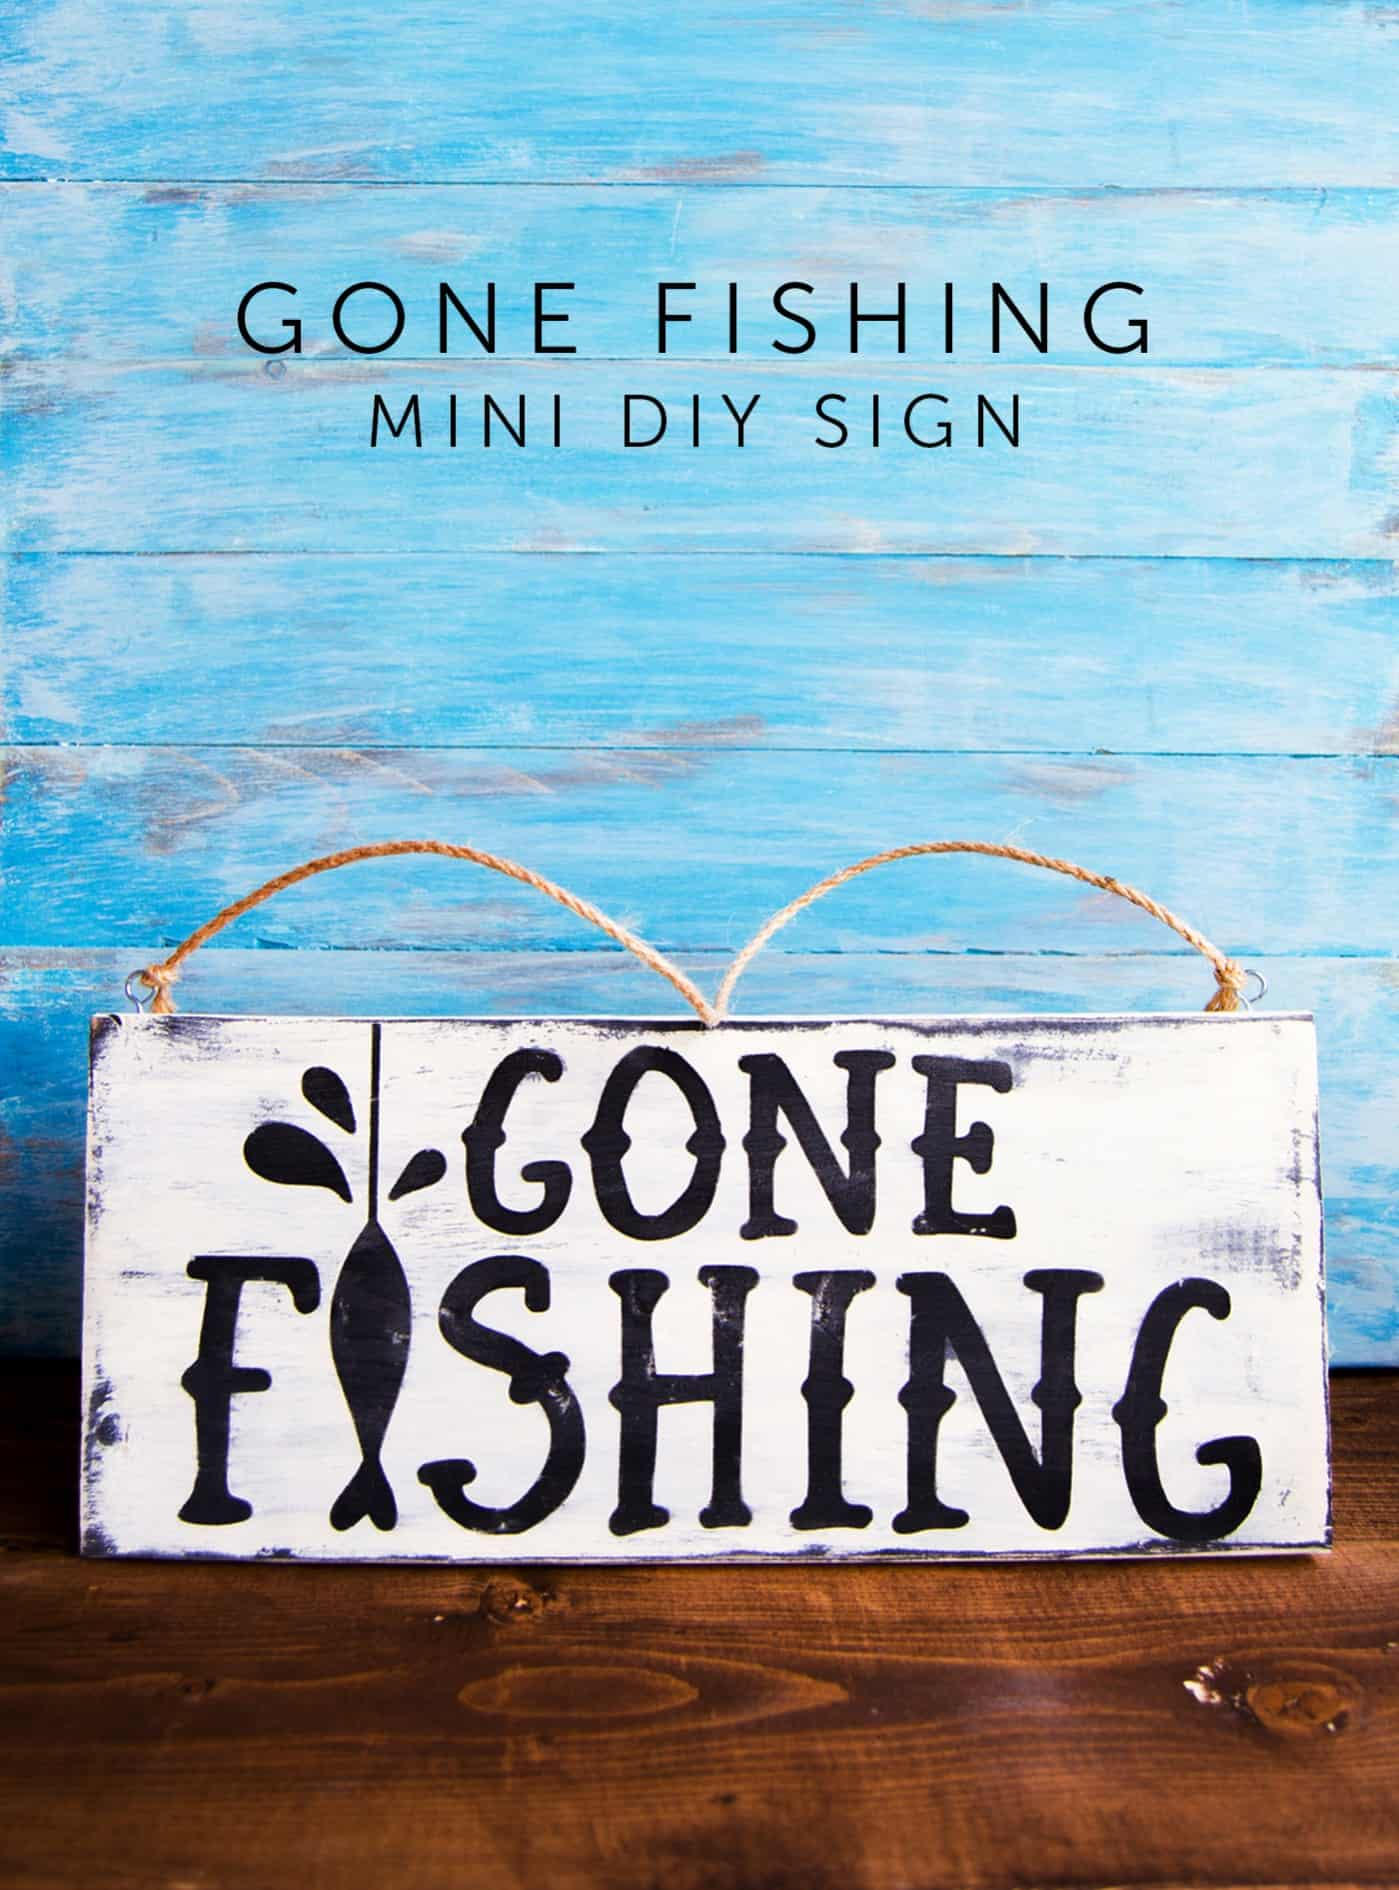 Gone Fishing Mini DIY Sign